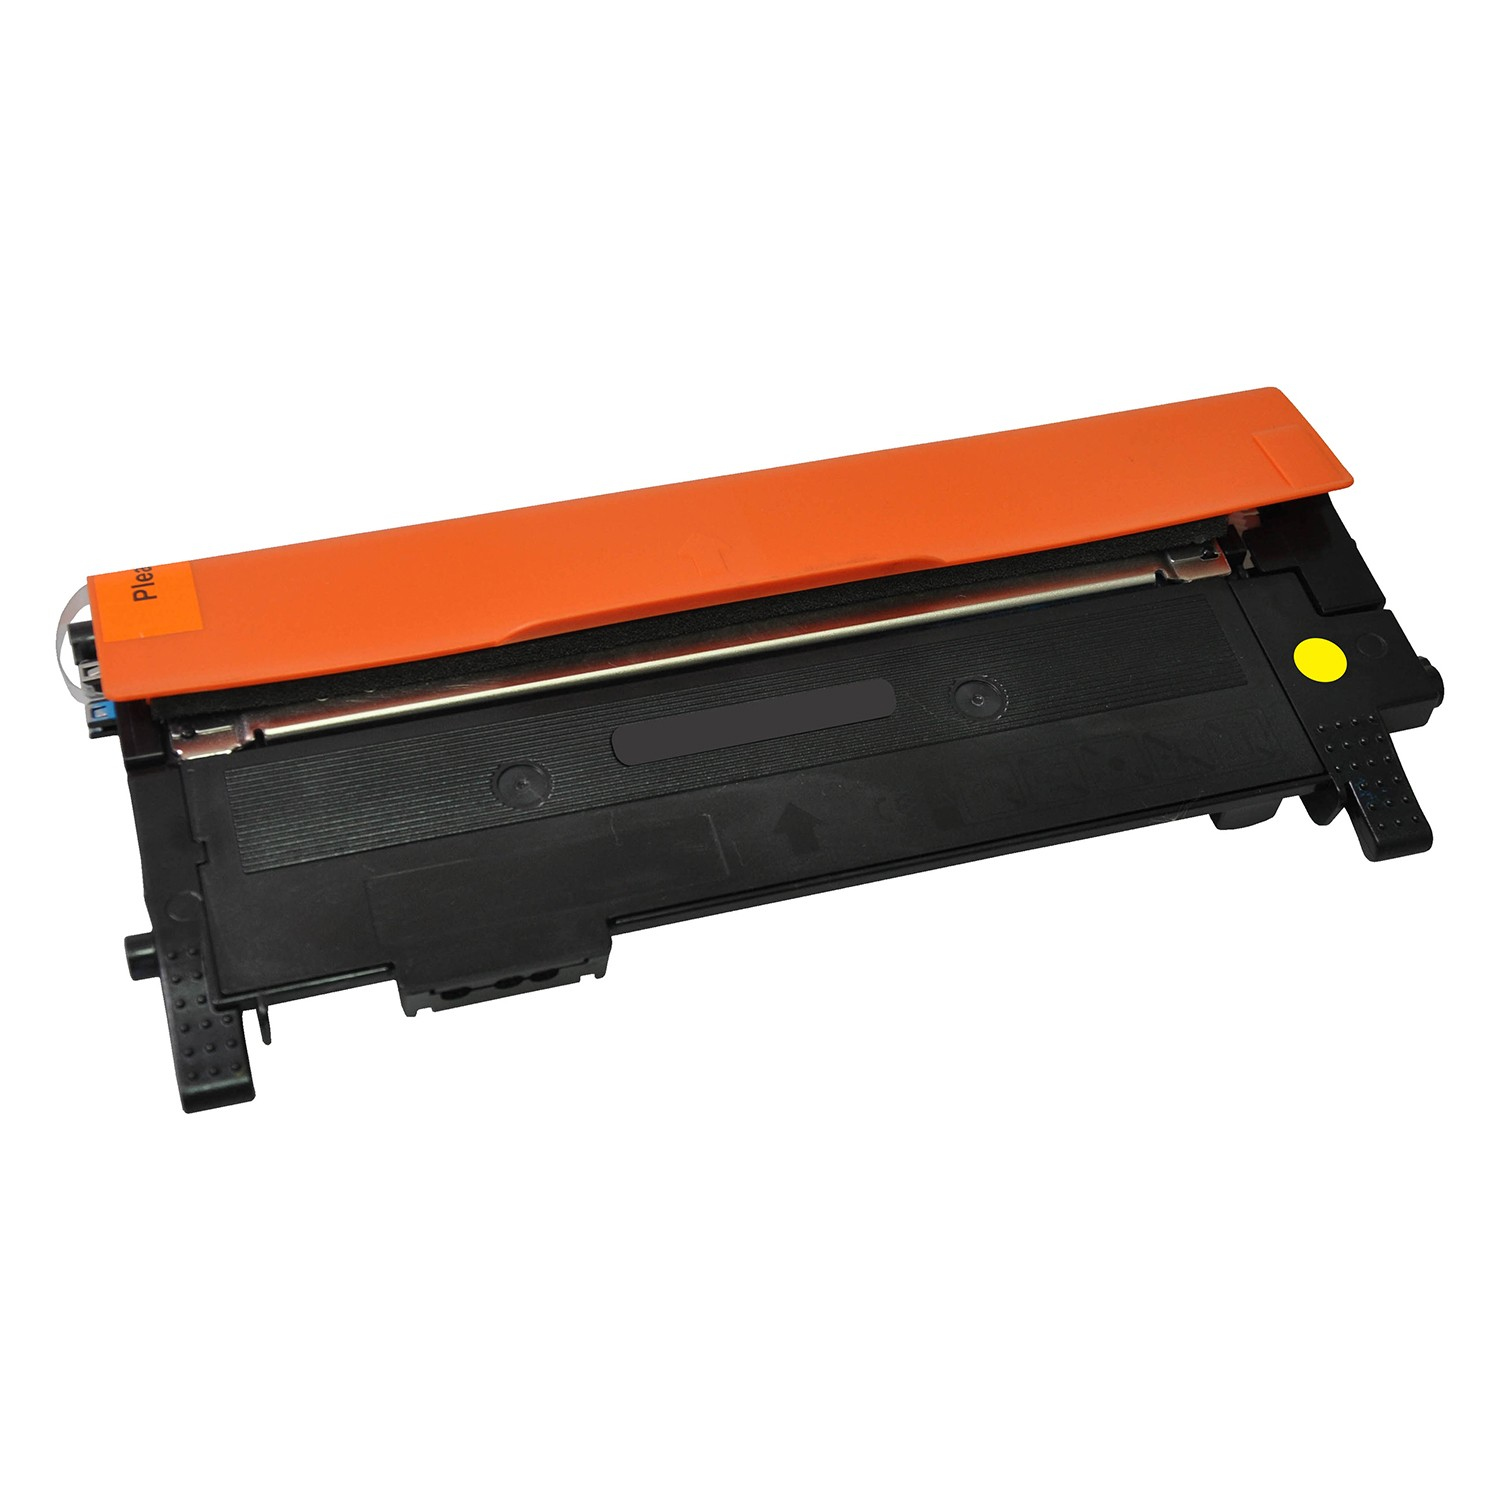 V7 Toner for selected Samsung printers - Replacement for OEM cartridge part number CLT-Y404S/ELS